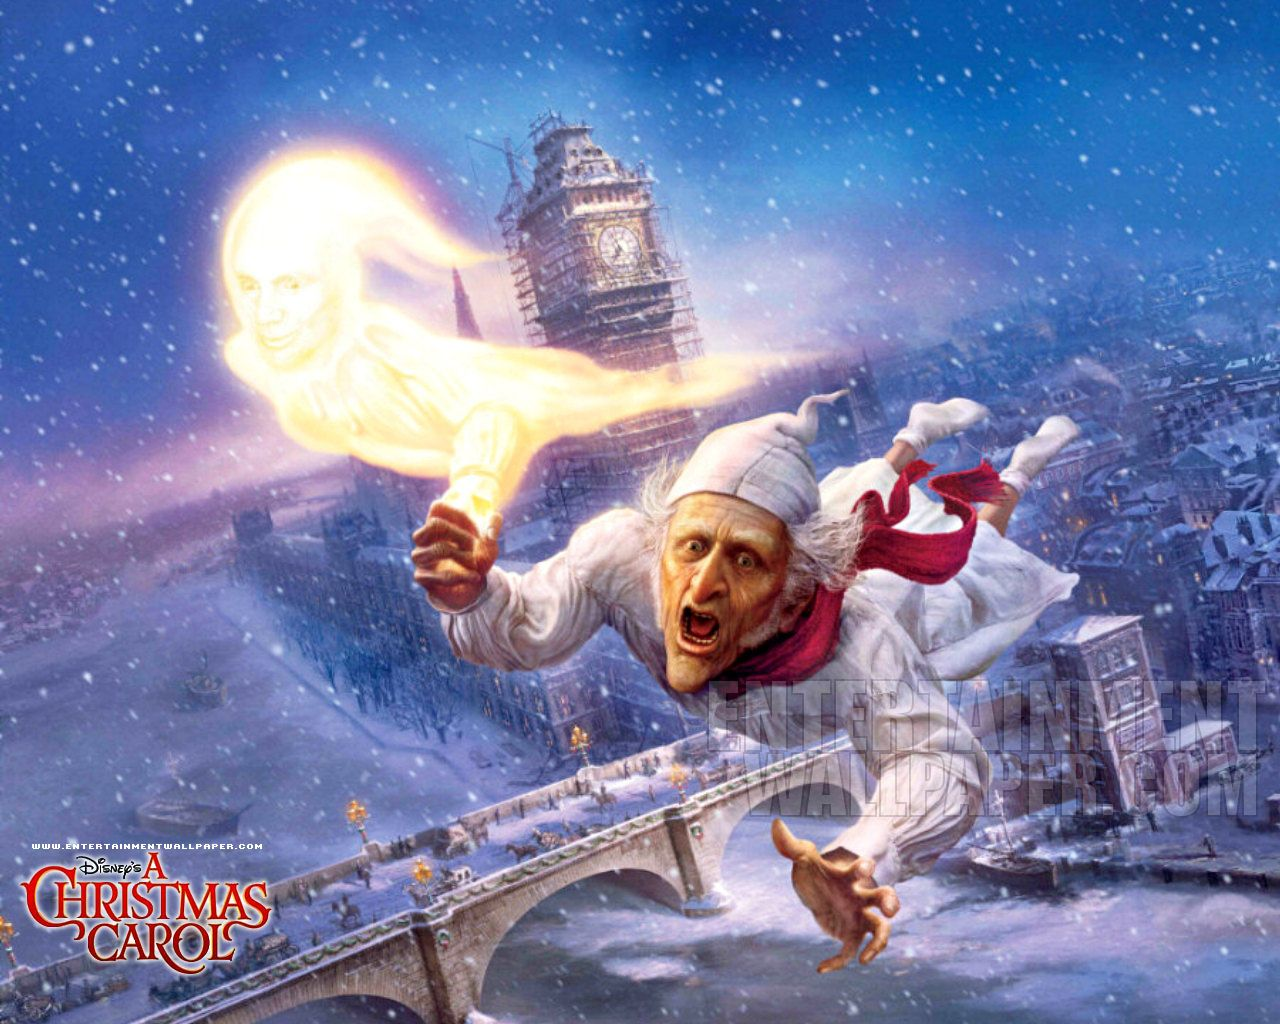 Jim Carrey Christmas Carol.A Christmas Carol Jim Carrey Animation Nation